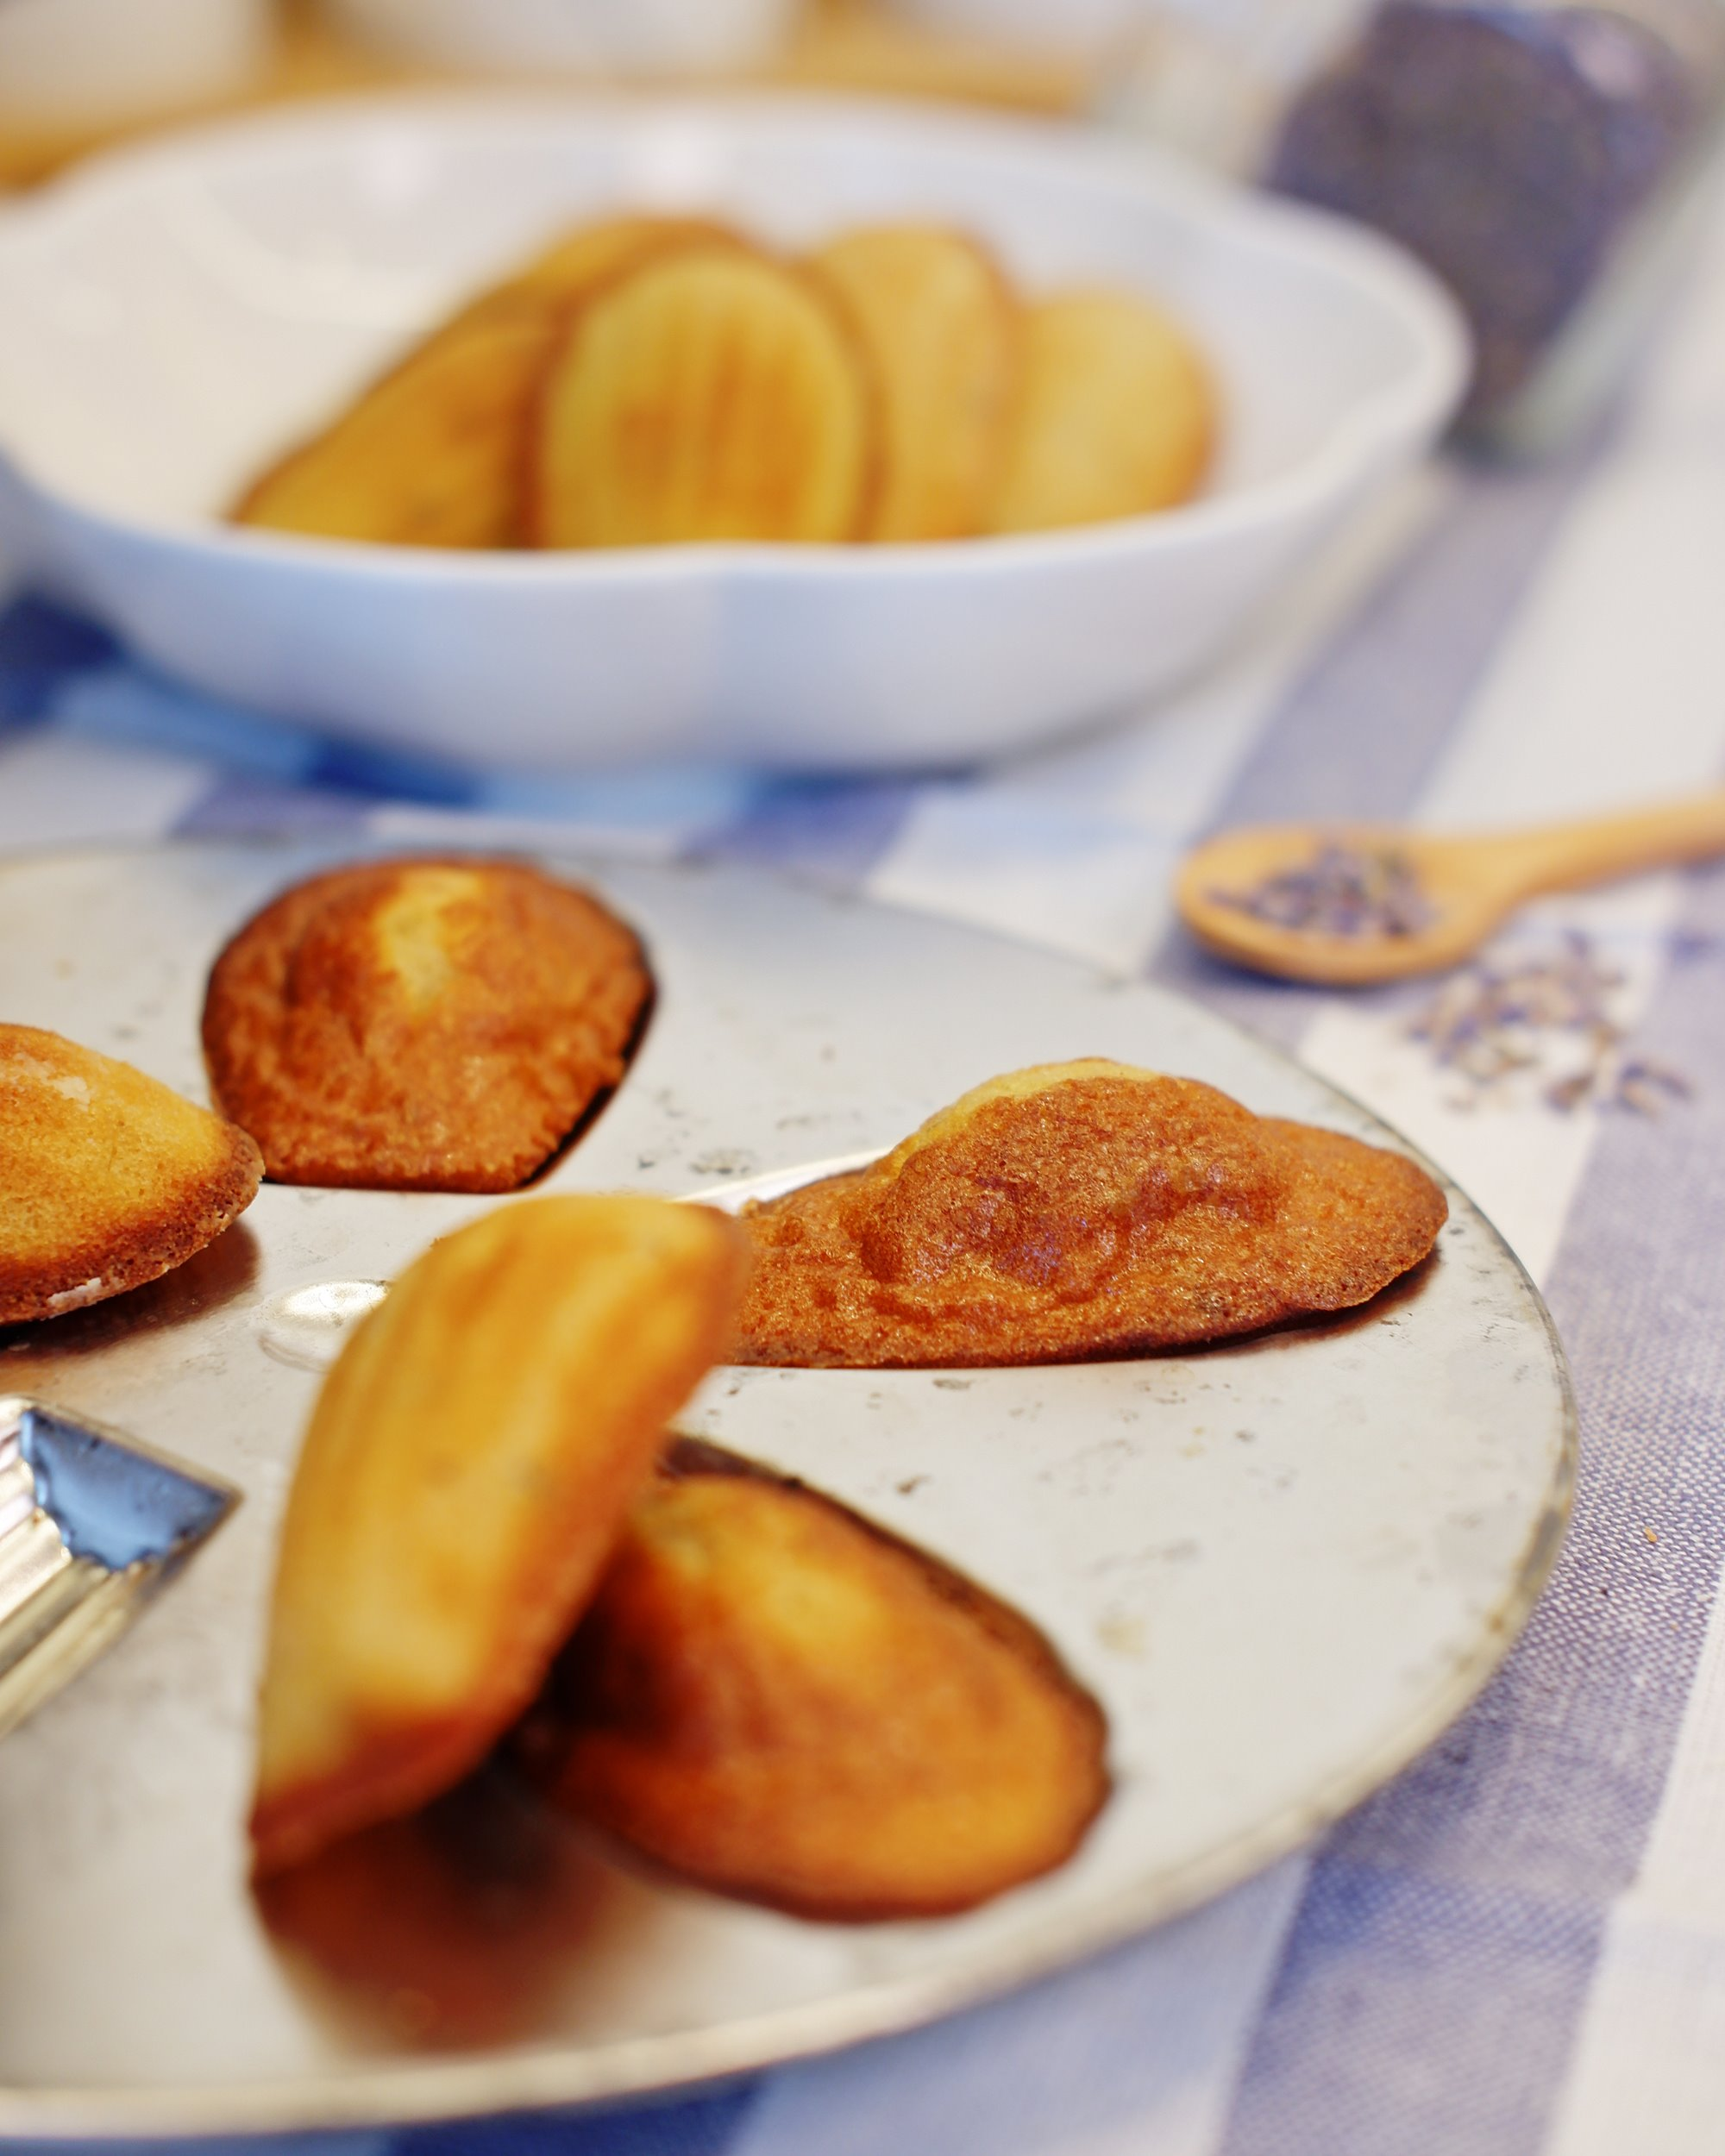 Lavender Madeleines with Panasonic Cubie Oven